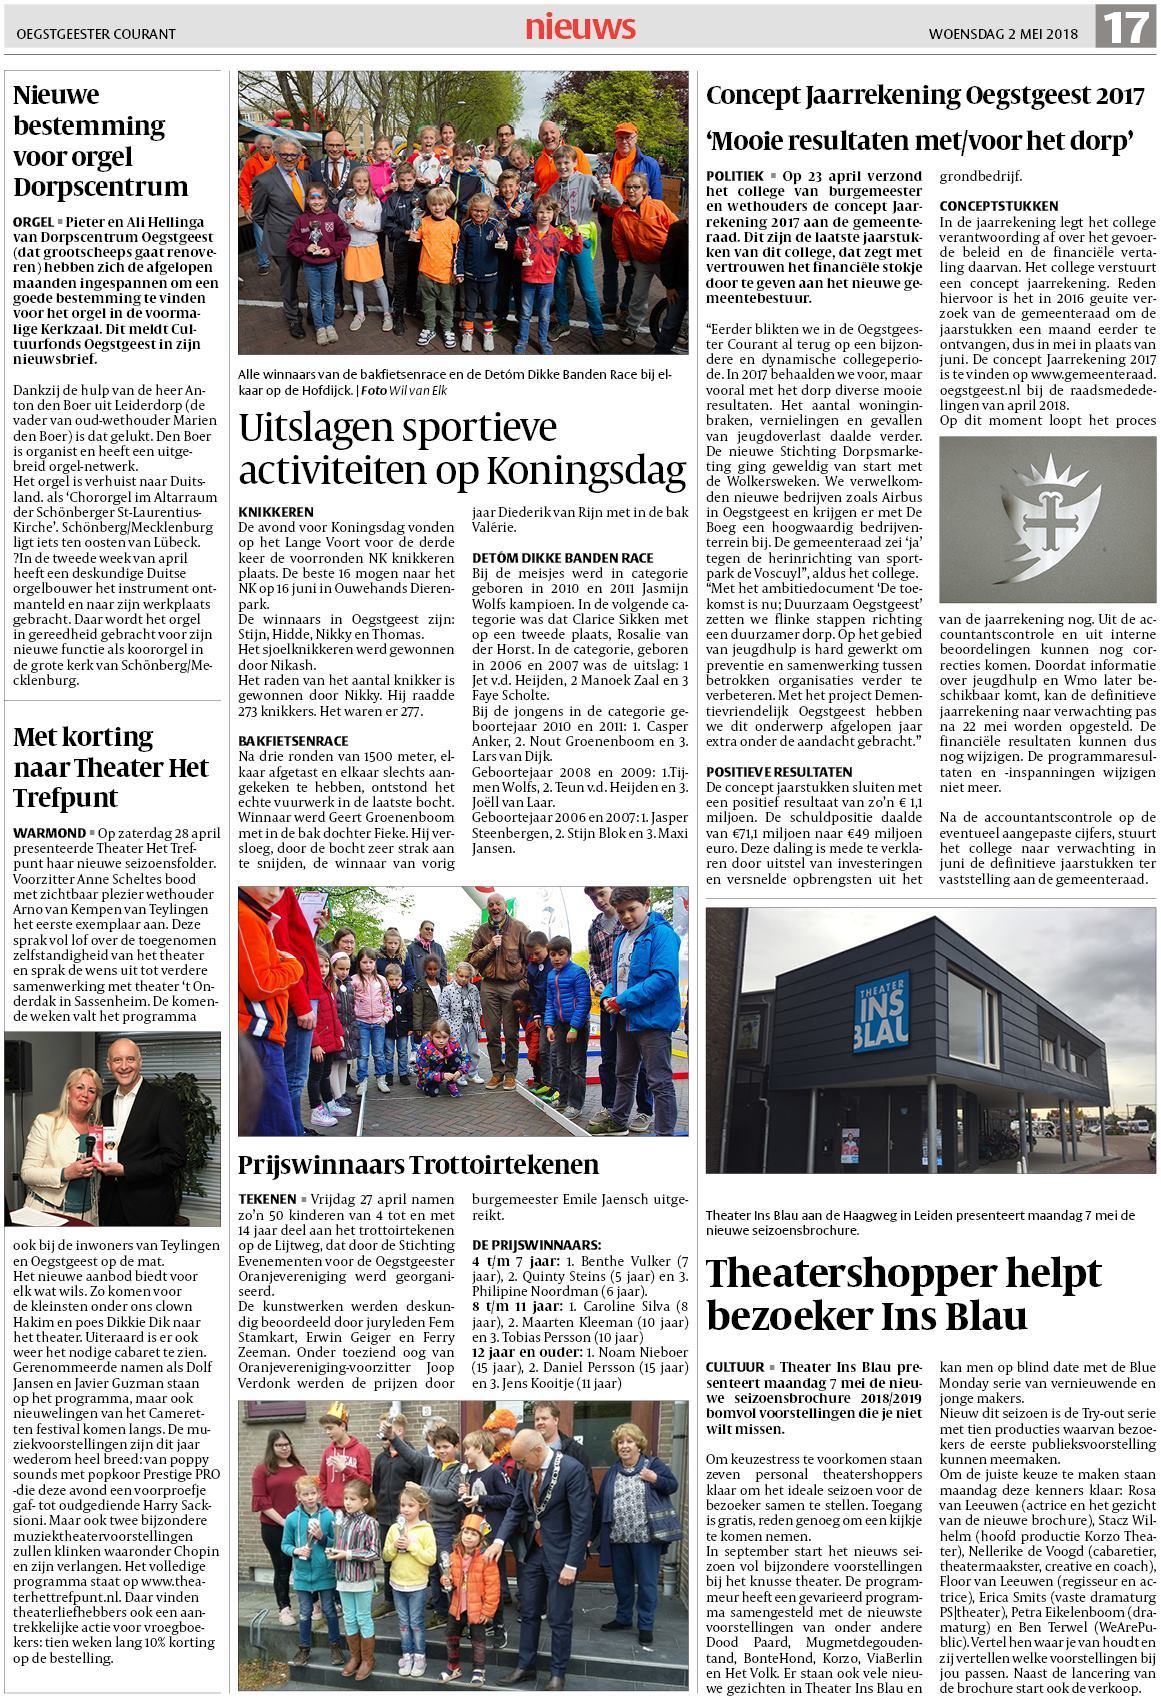 76e91fb3c7d Oegstgeester Courant 2 mei 2018